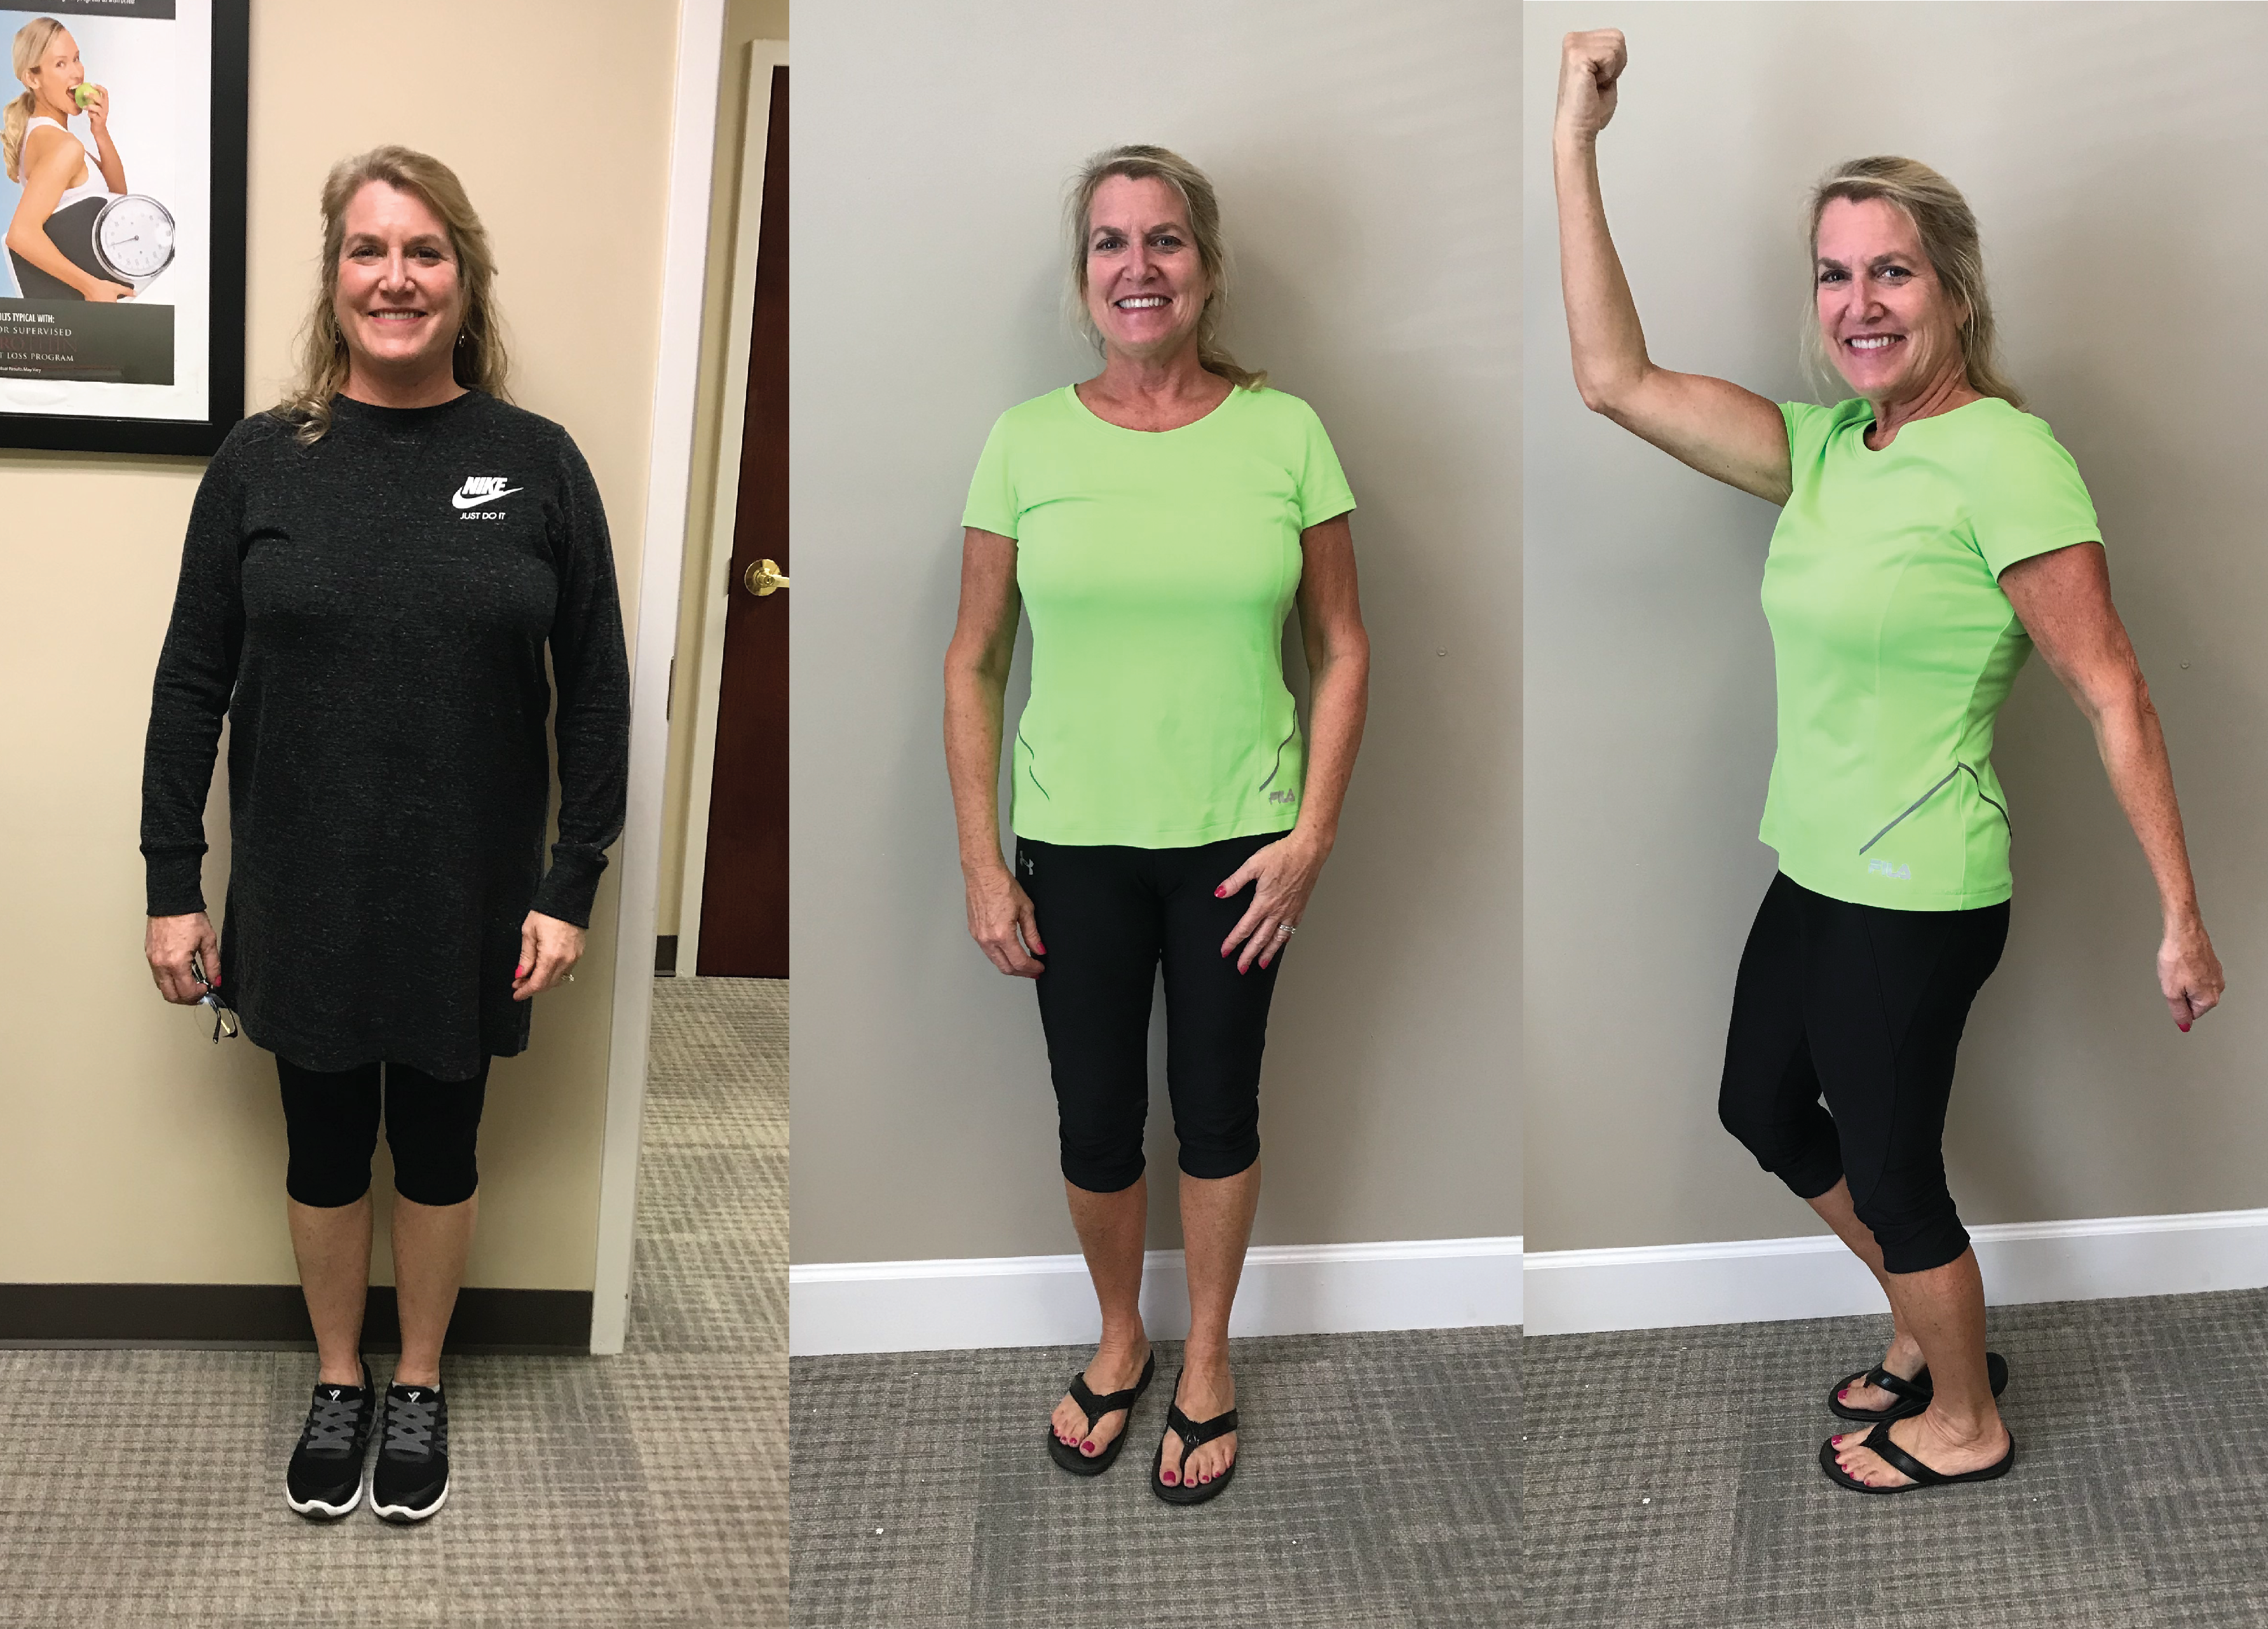 Amy lost 27 pounds and 20 inches